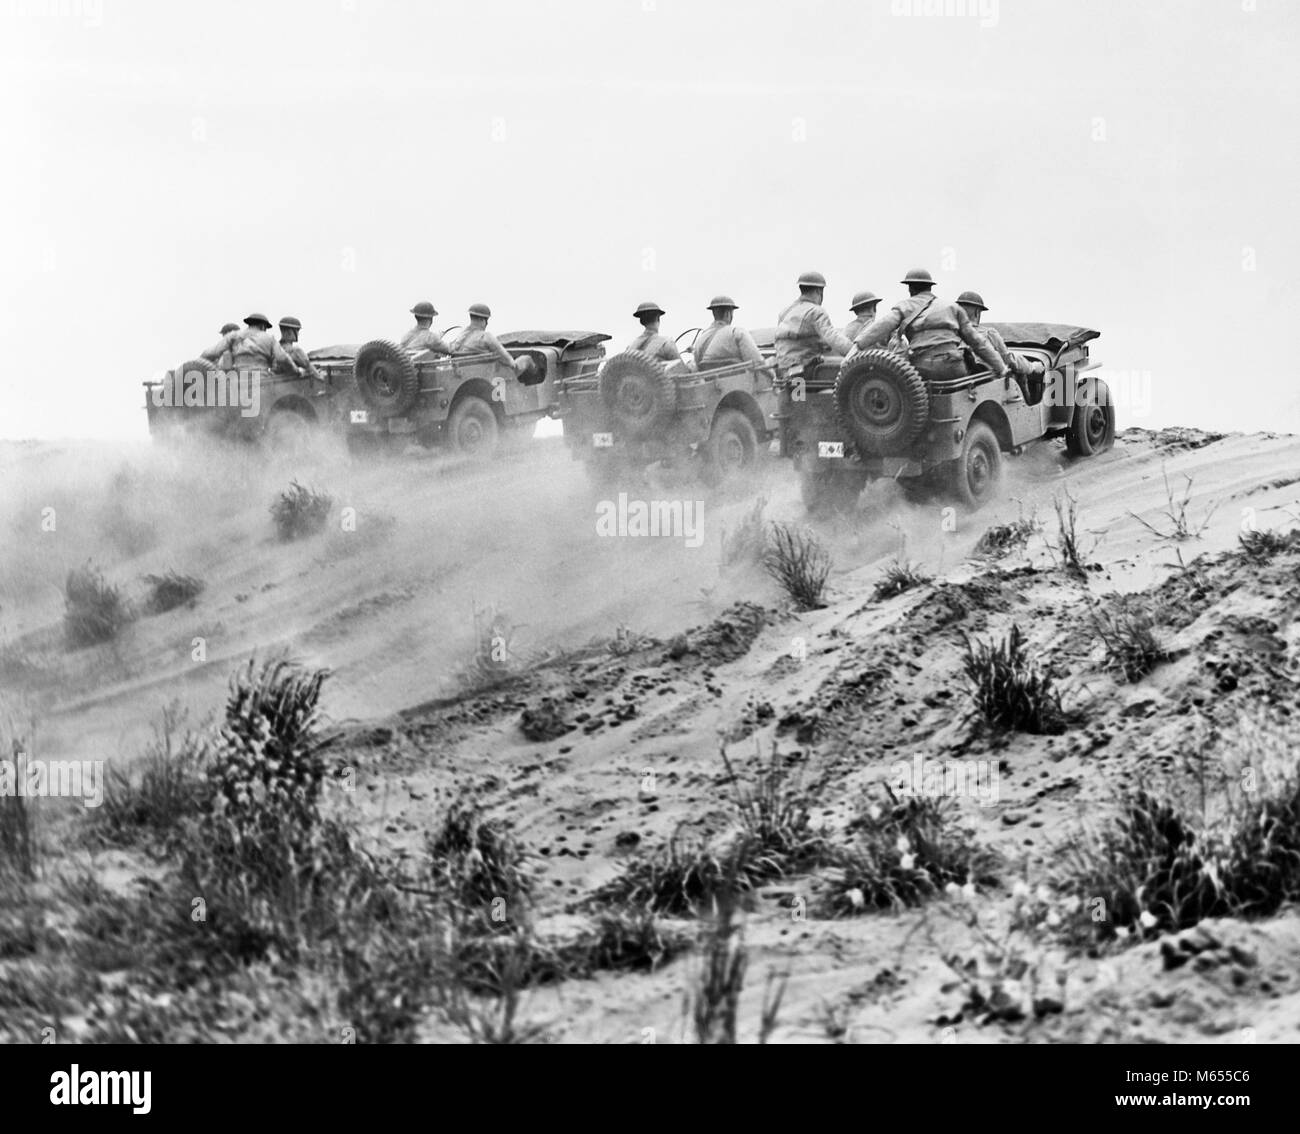 1940s ARMY SOLDIERS RIDING JEEPS IN FORMATION GOING UP A DUSTY HILL - a2739 HAR001 HARS EXCITEMENT LOW ANGLE WORLD - Stock Image